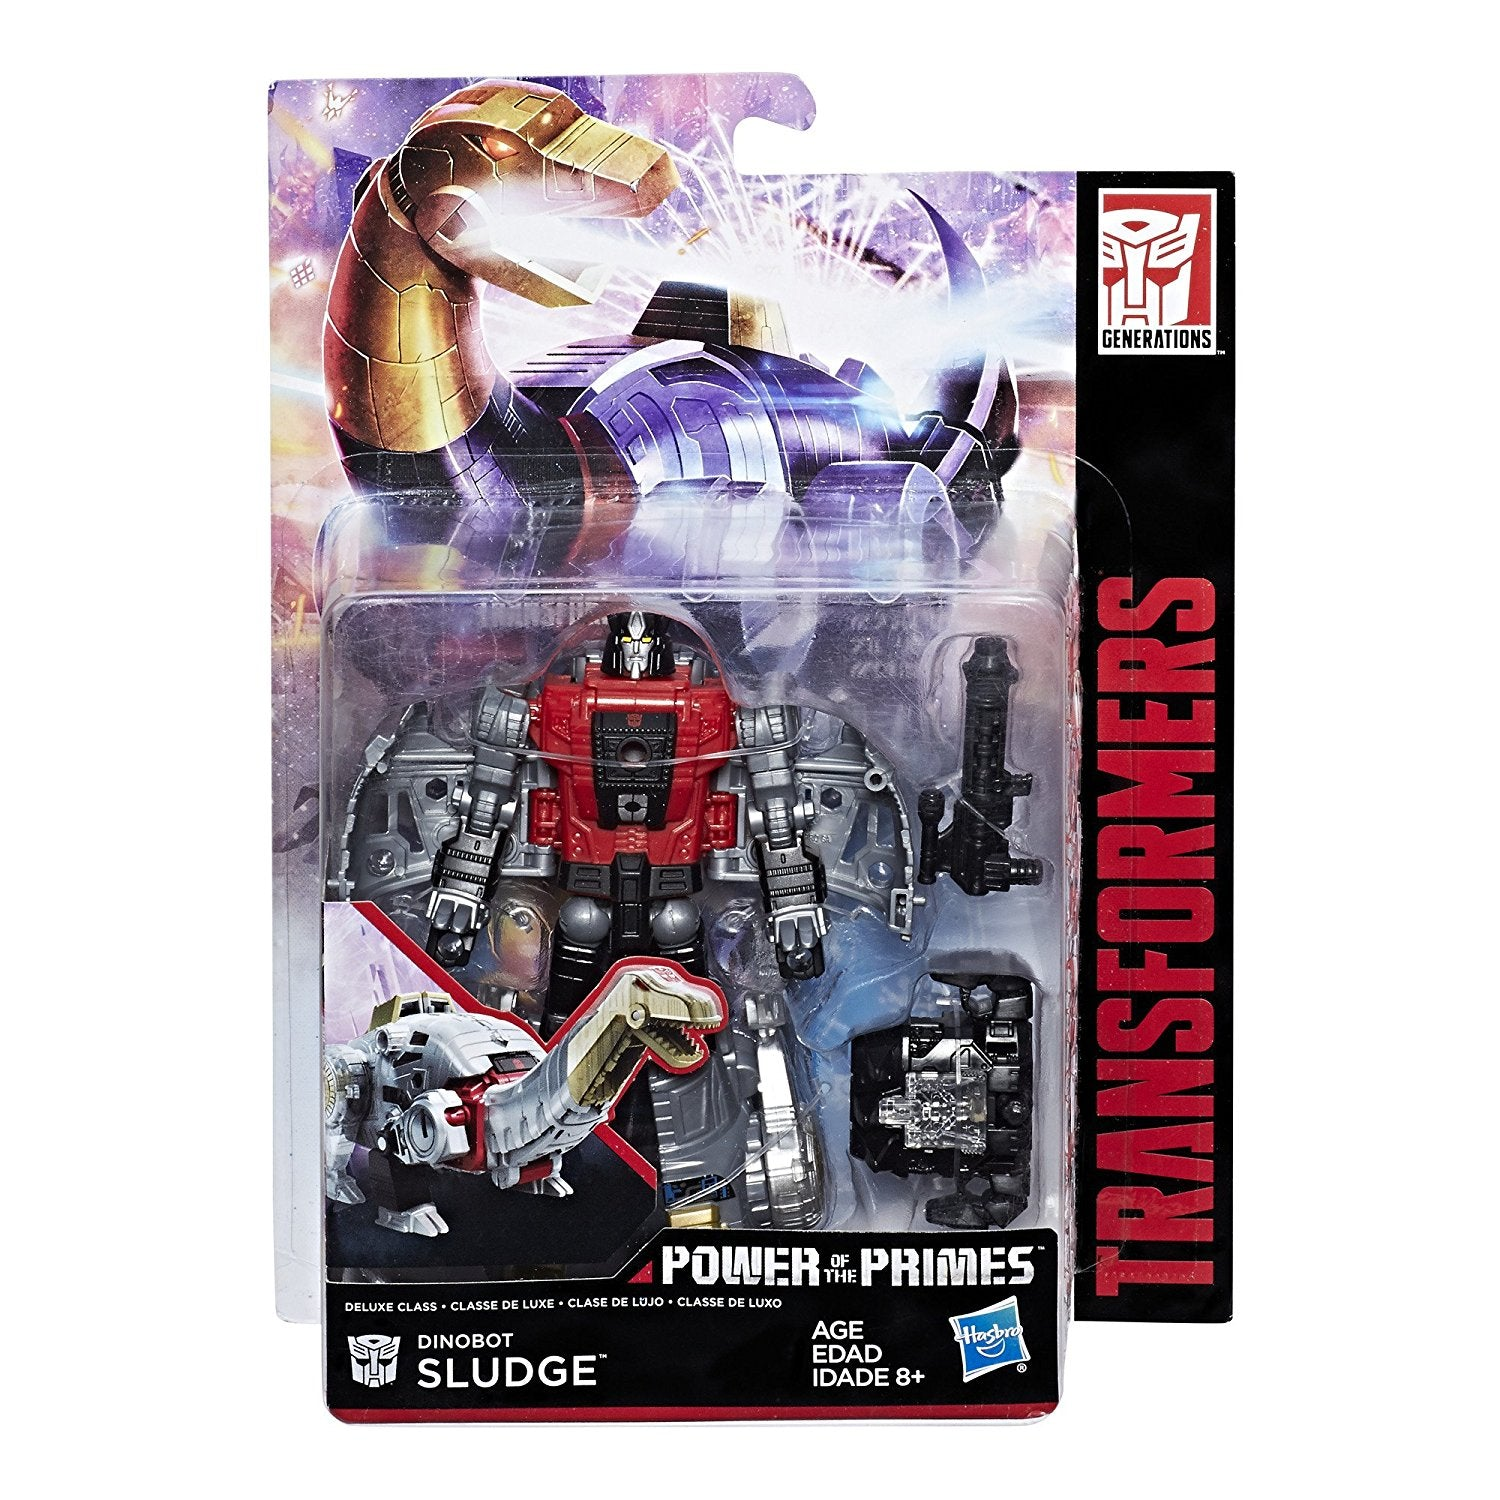 Dinobot Sludge Transformers Generations Power of the Primes Deluxe Class